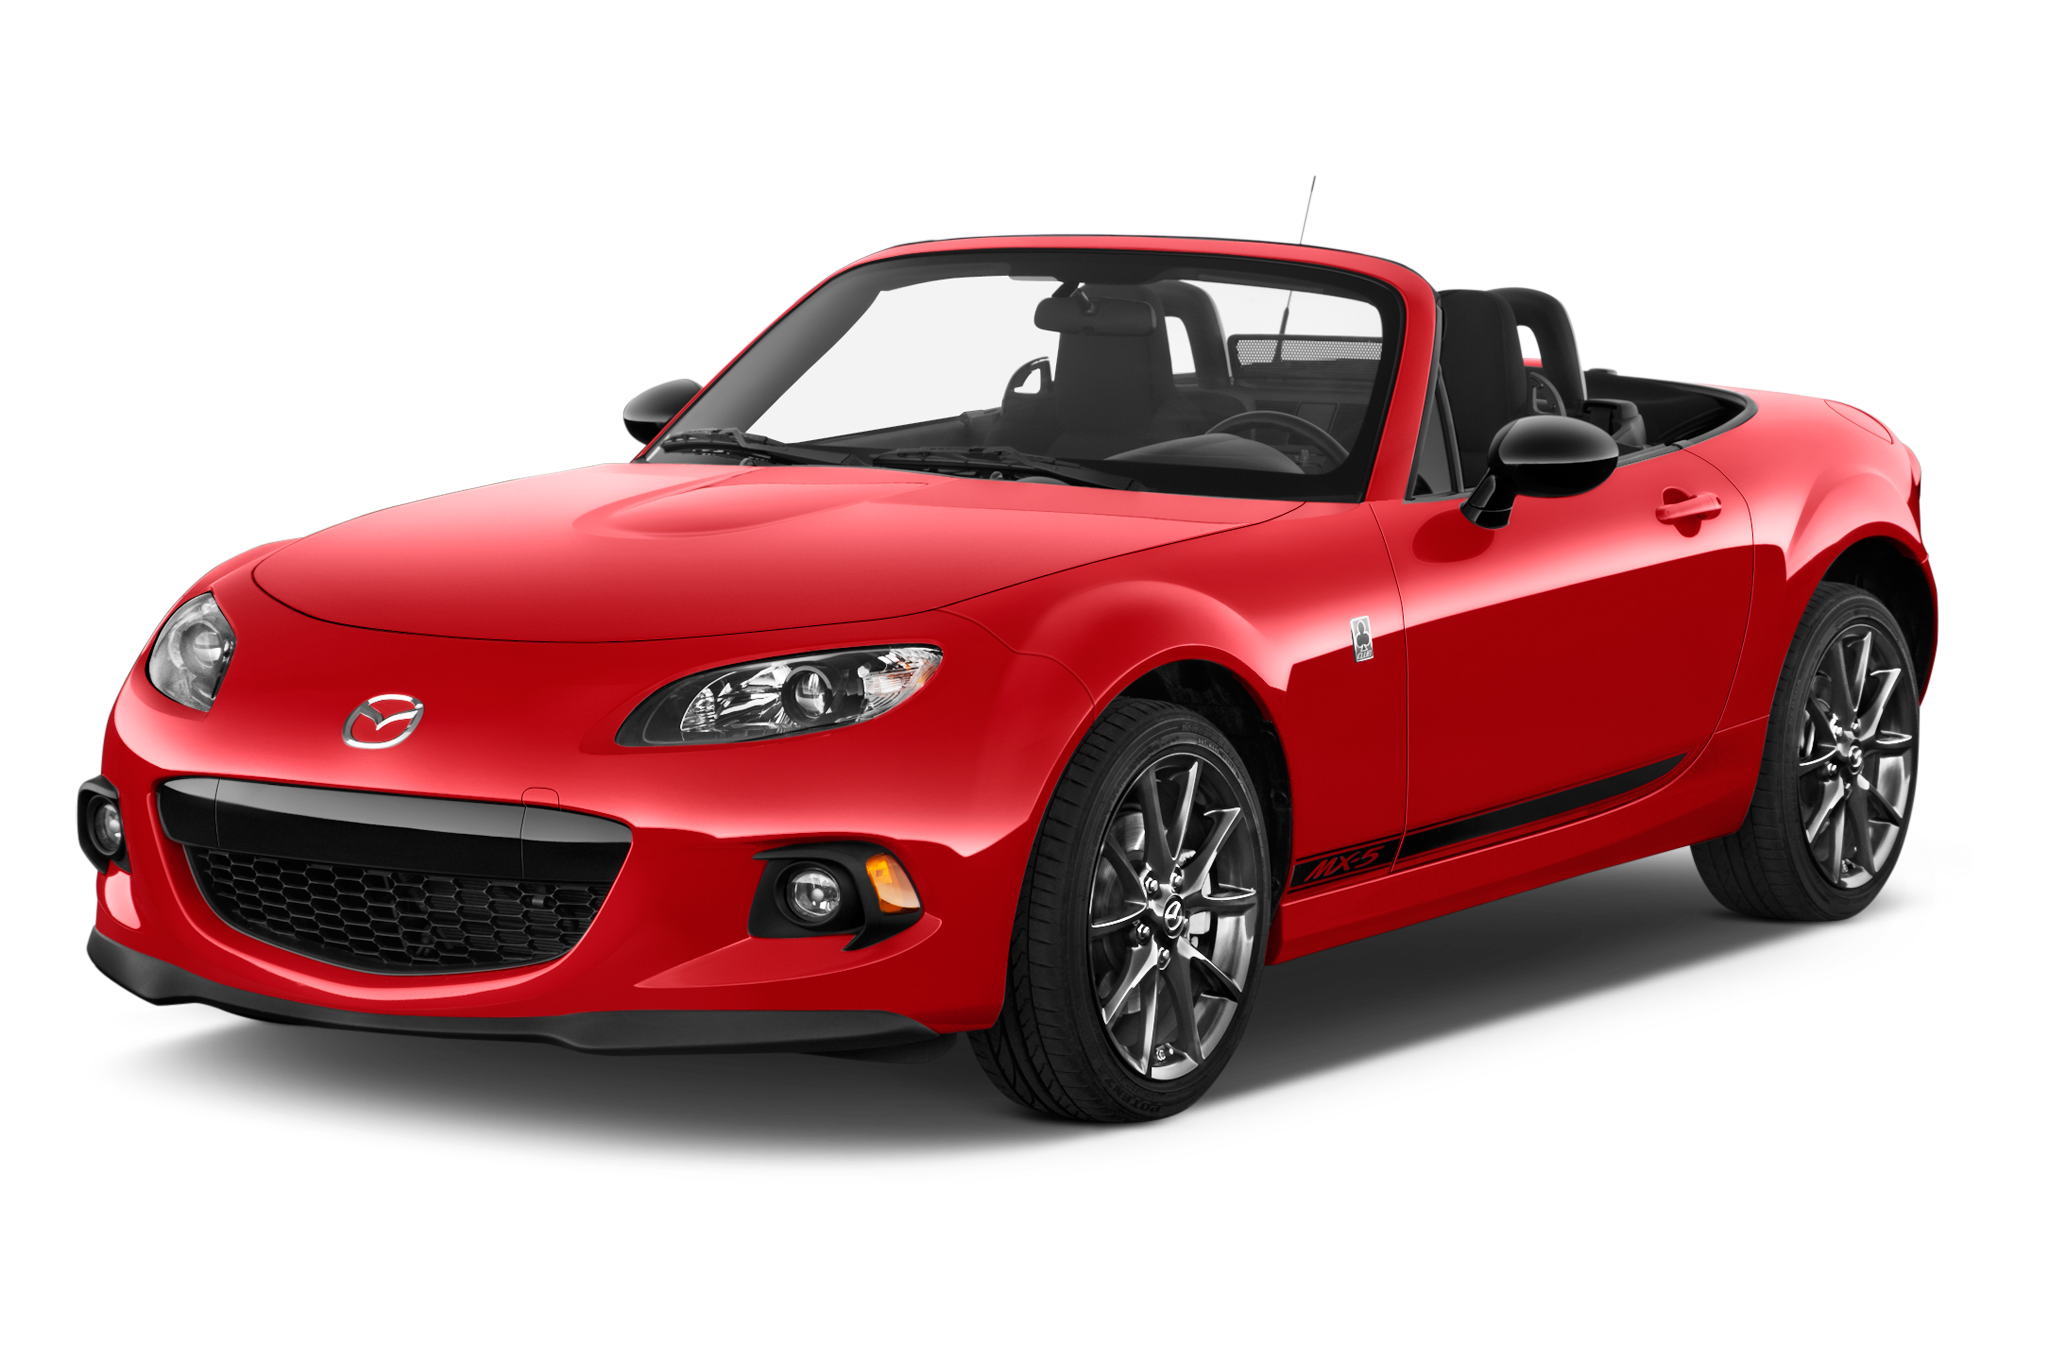 2015 mazda miata 25th anniversary edition costs 33 000 automobile. Black Bedroom Furniture Sets. Home Design Ideas